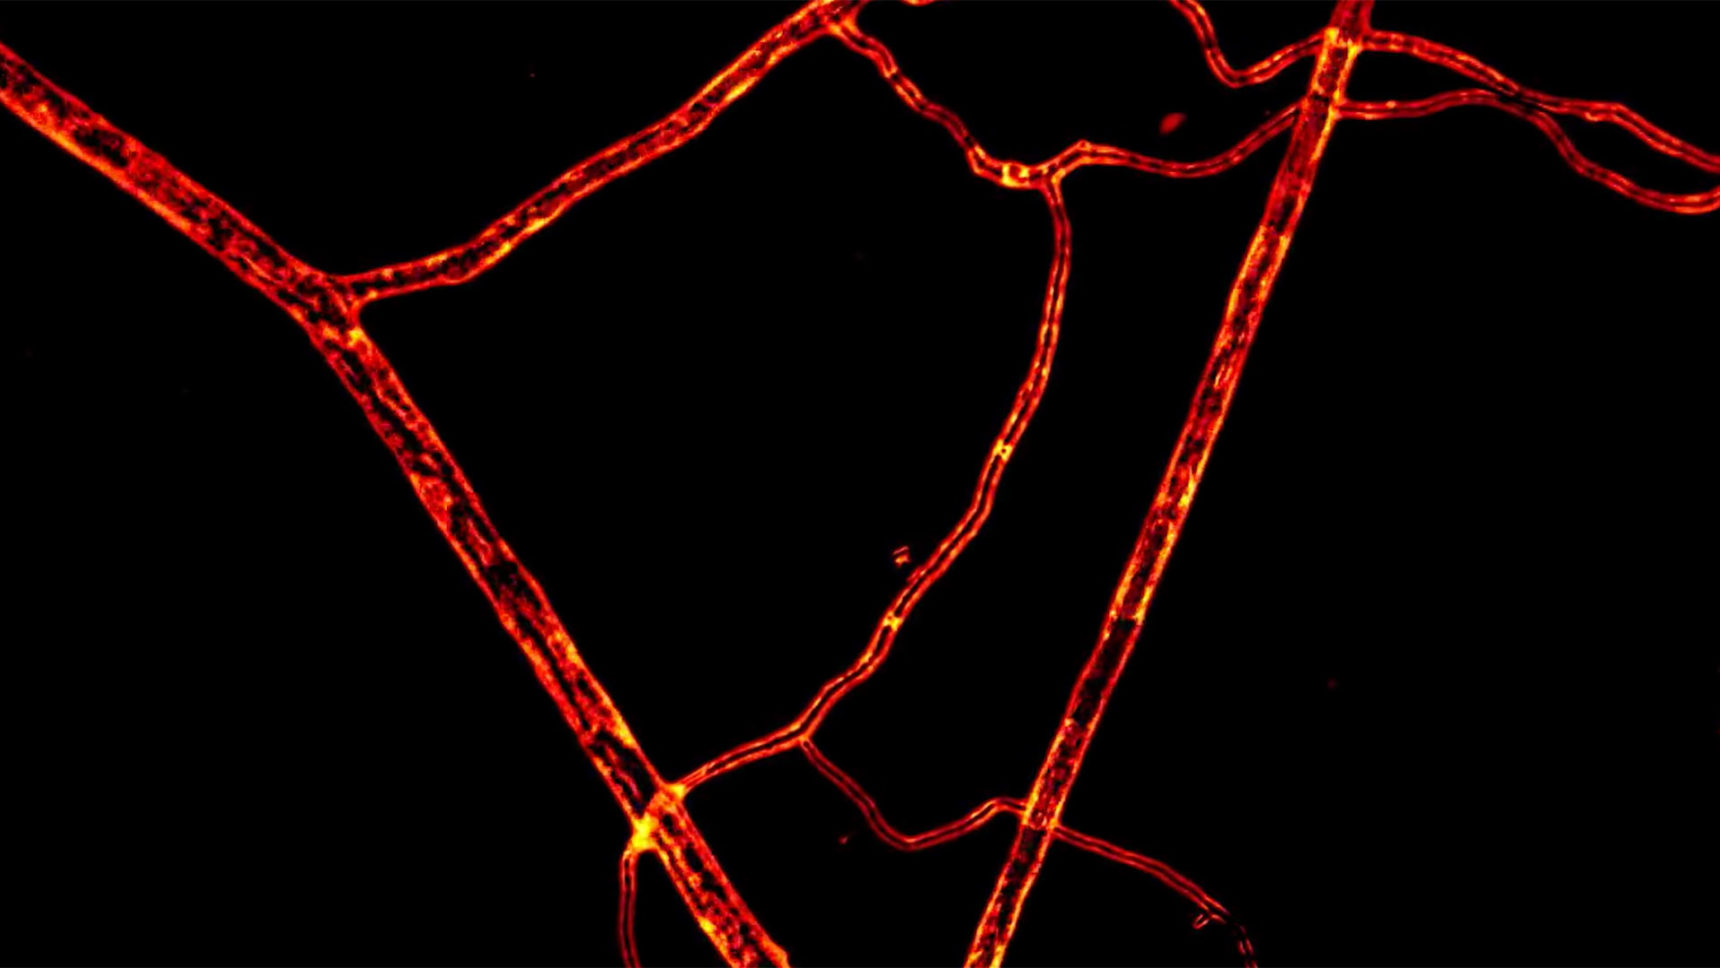 Video: This video shows materials streaming through living fungal hyphae. The direction of the streaming changes because the fungus redirects the flow of nutrients, seemingly strategically, in response to environmental conditions.